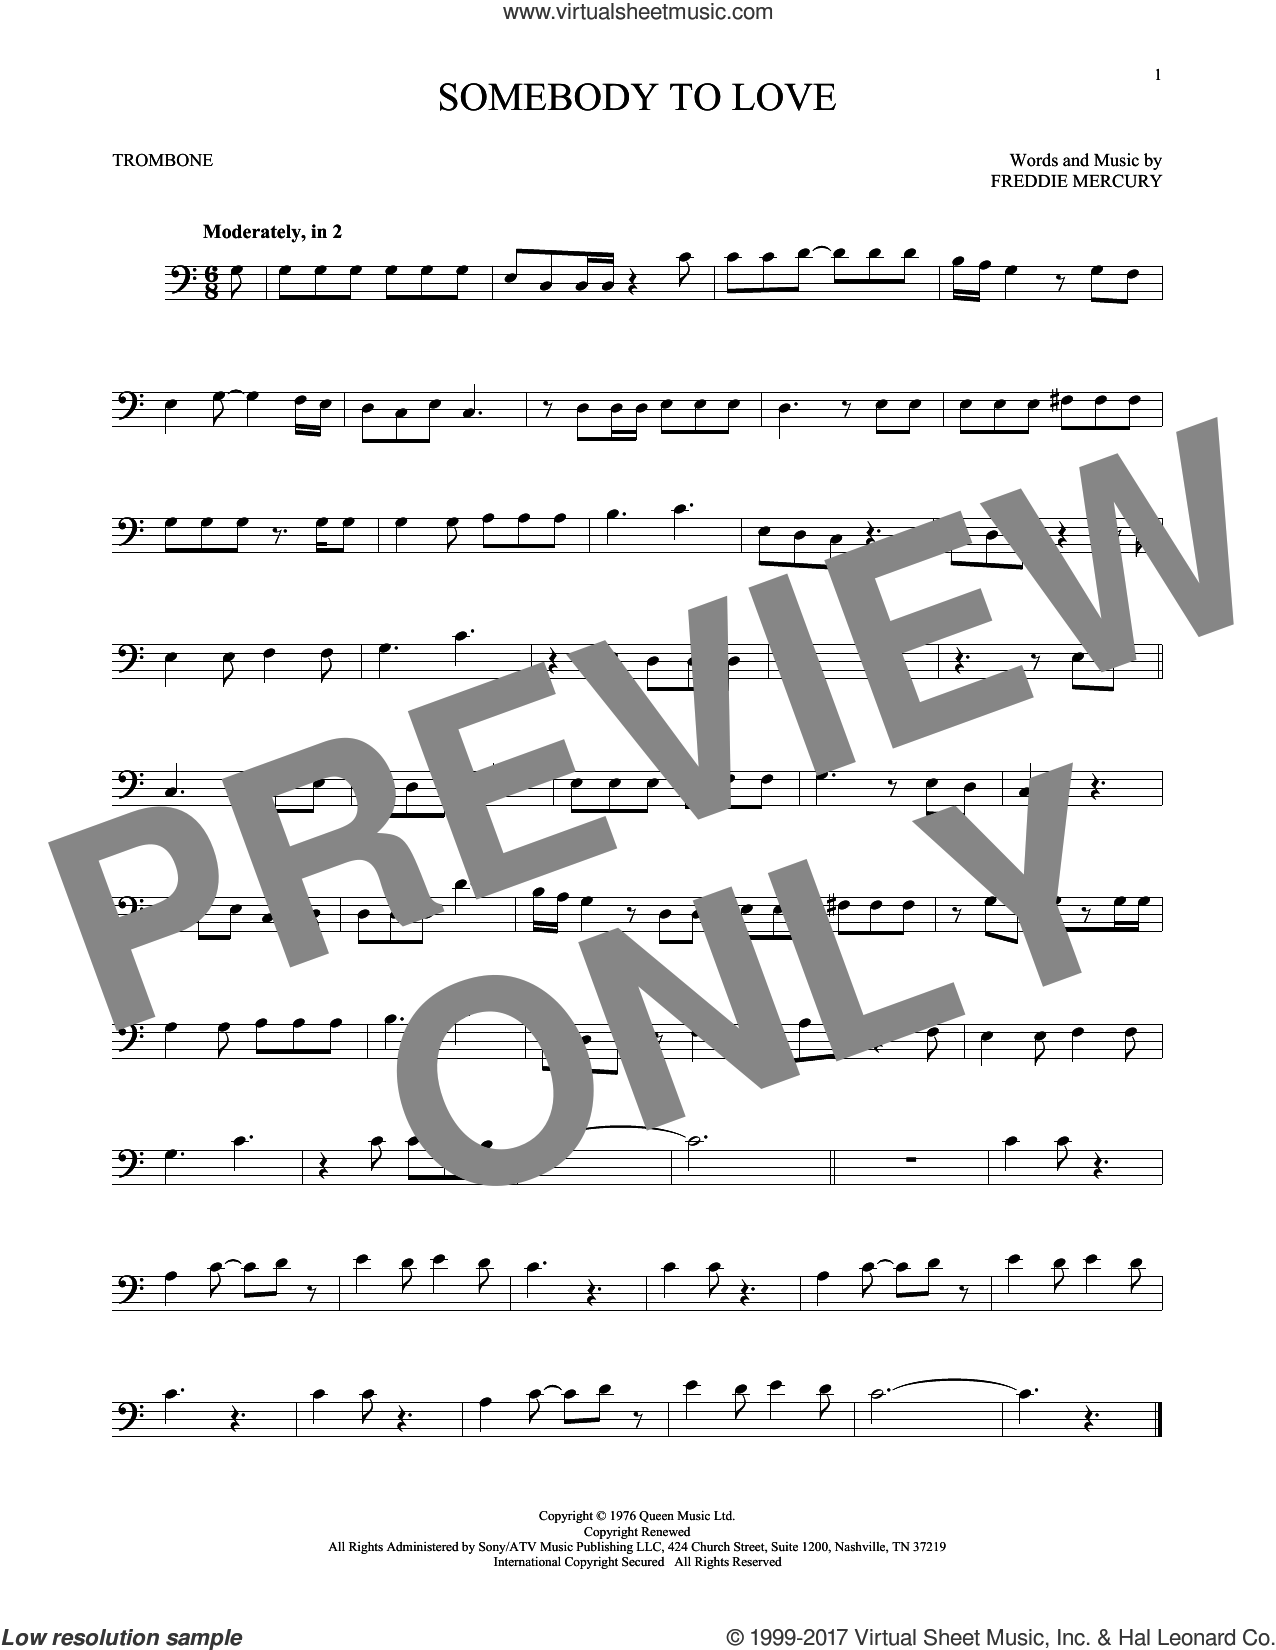 Somebody To Love sheet music for trombone solo by Queen and Freddie Mercury, intermediate skill level